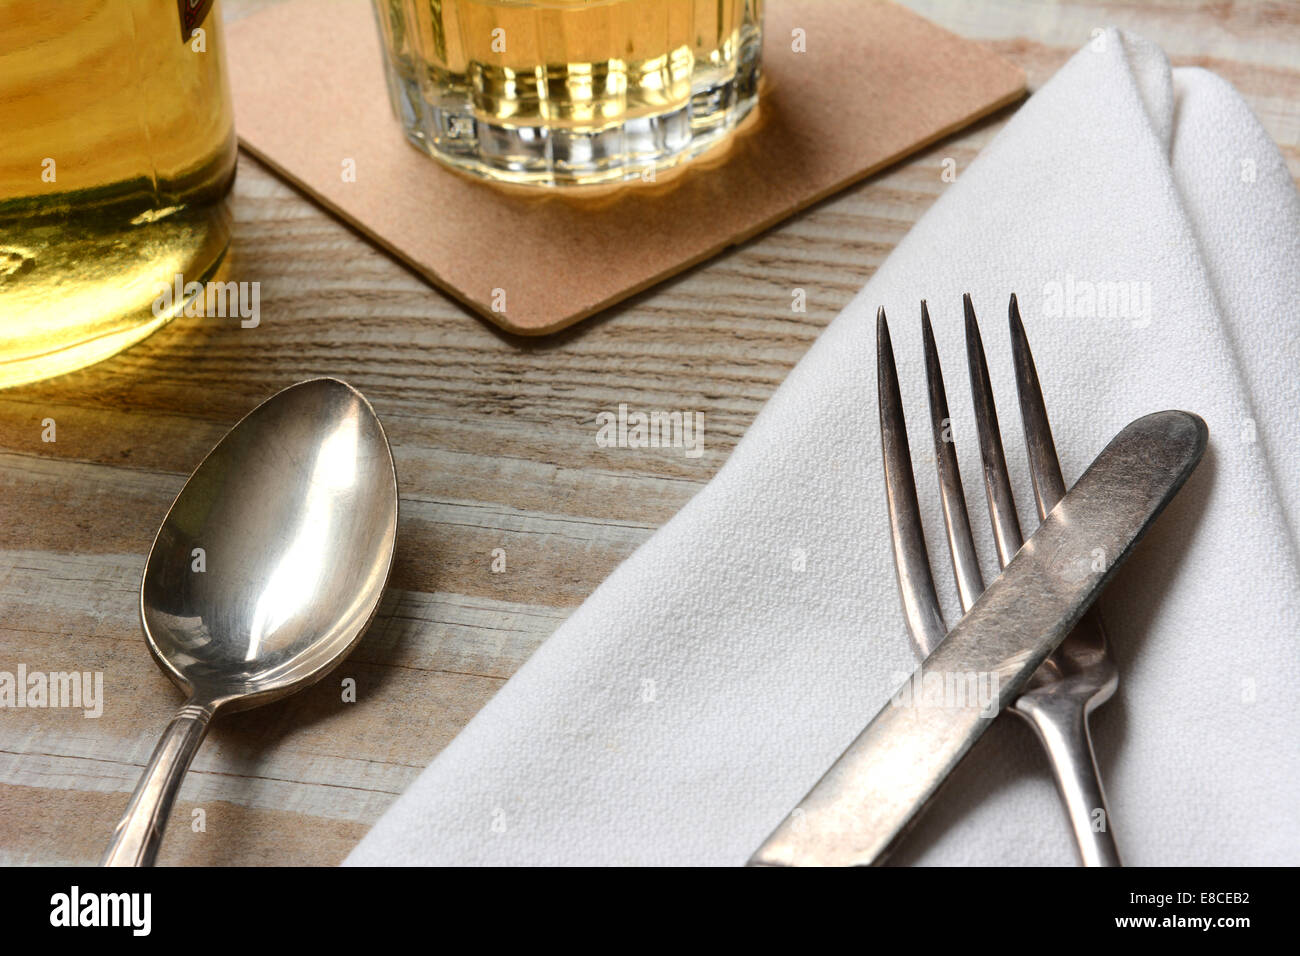 Closeup of a table setting. Old silverware, napkin and drinks on a ...